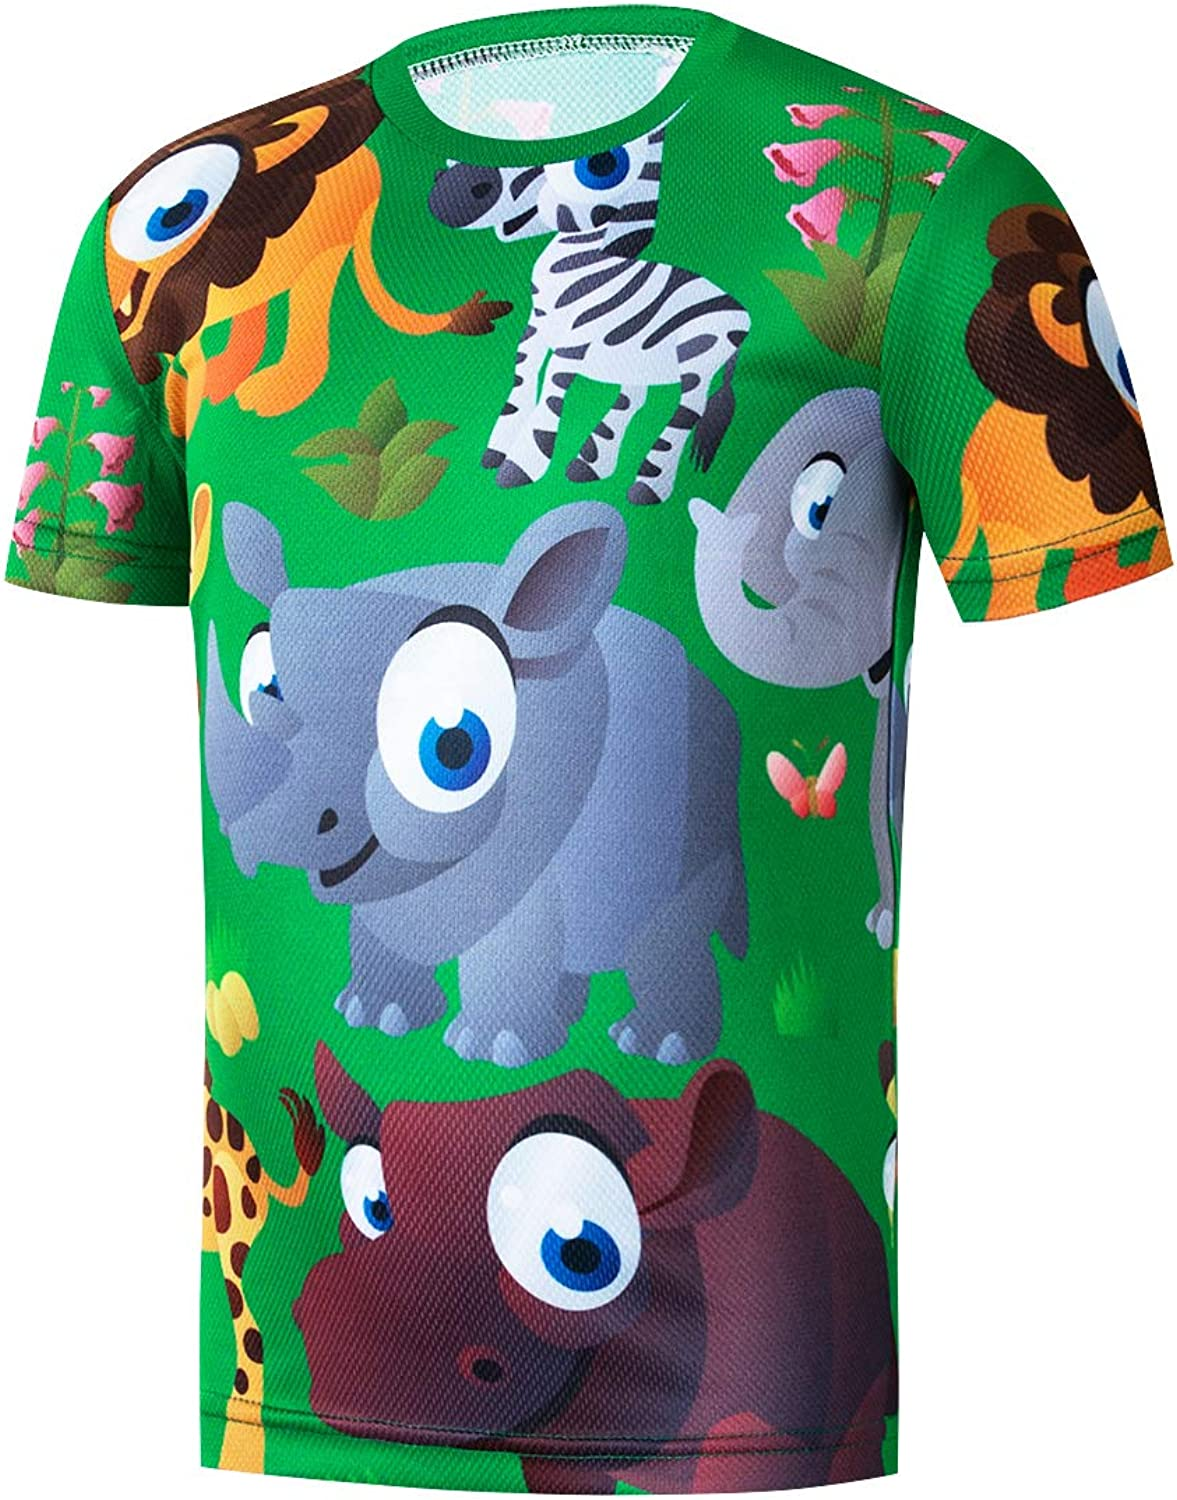 Cycling Jersey Kids,Bike Short Sleeve for Girls Boys Breathable T-Shirt